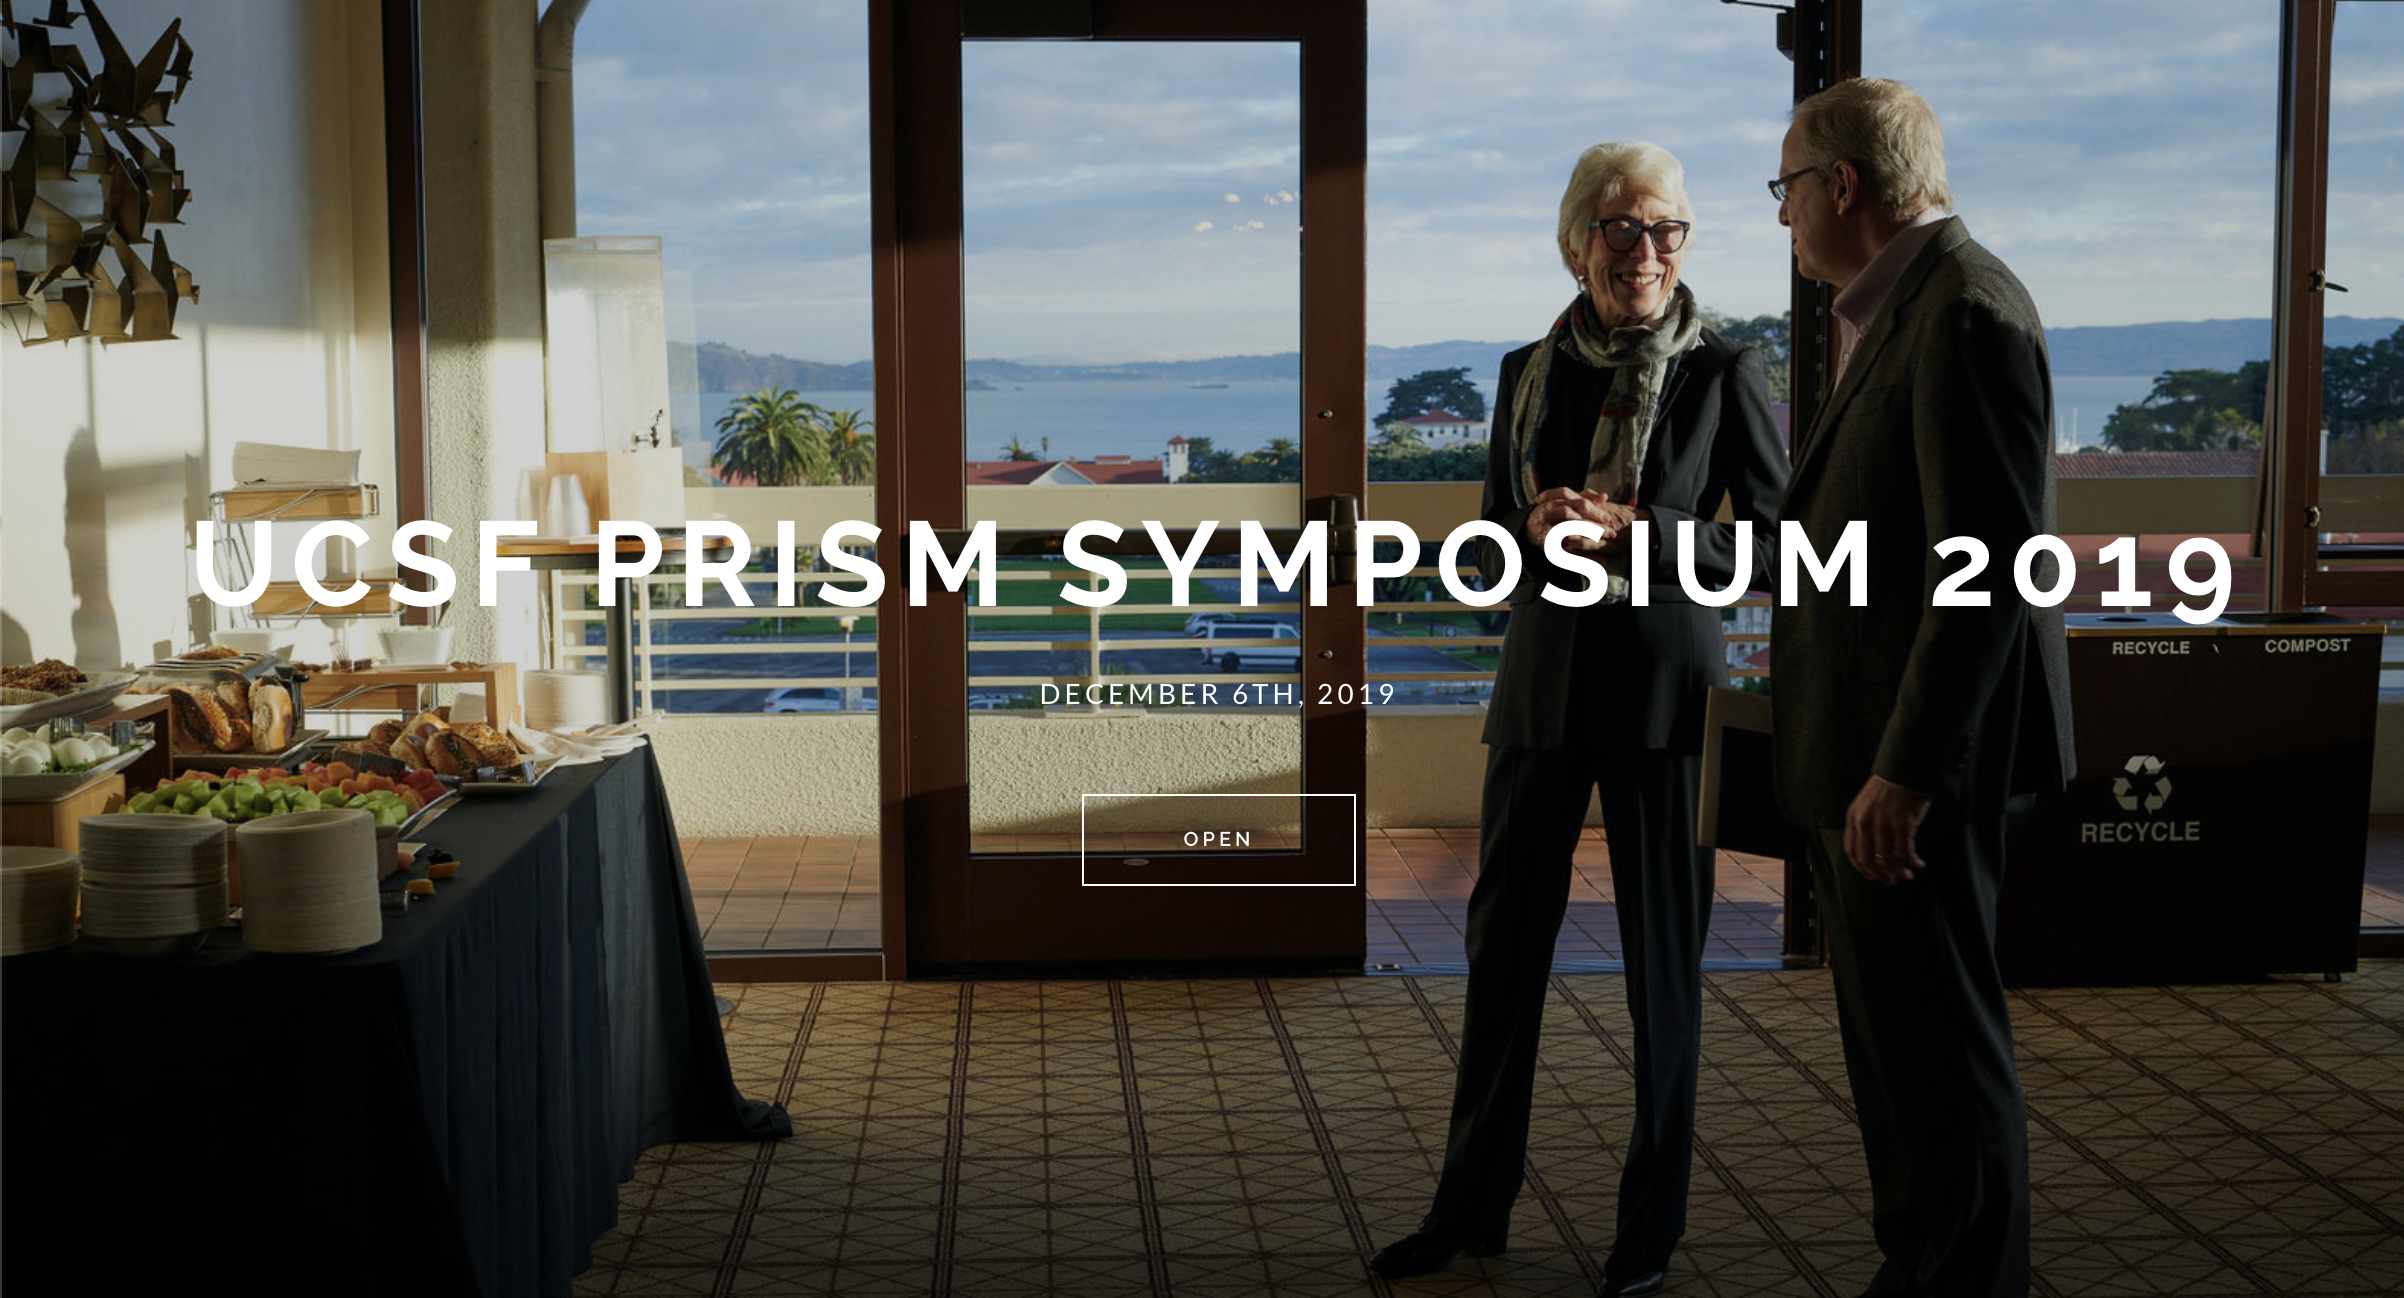 Presentations from UCSF PRISM Symposium 2019